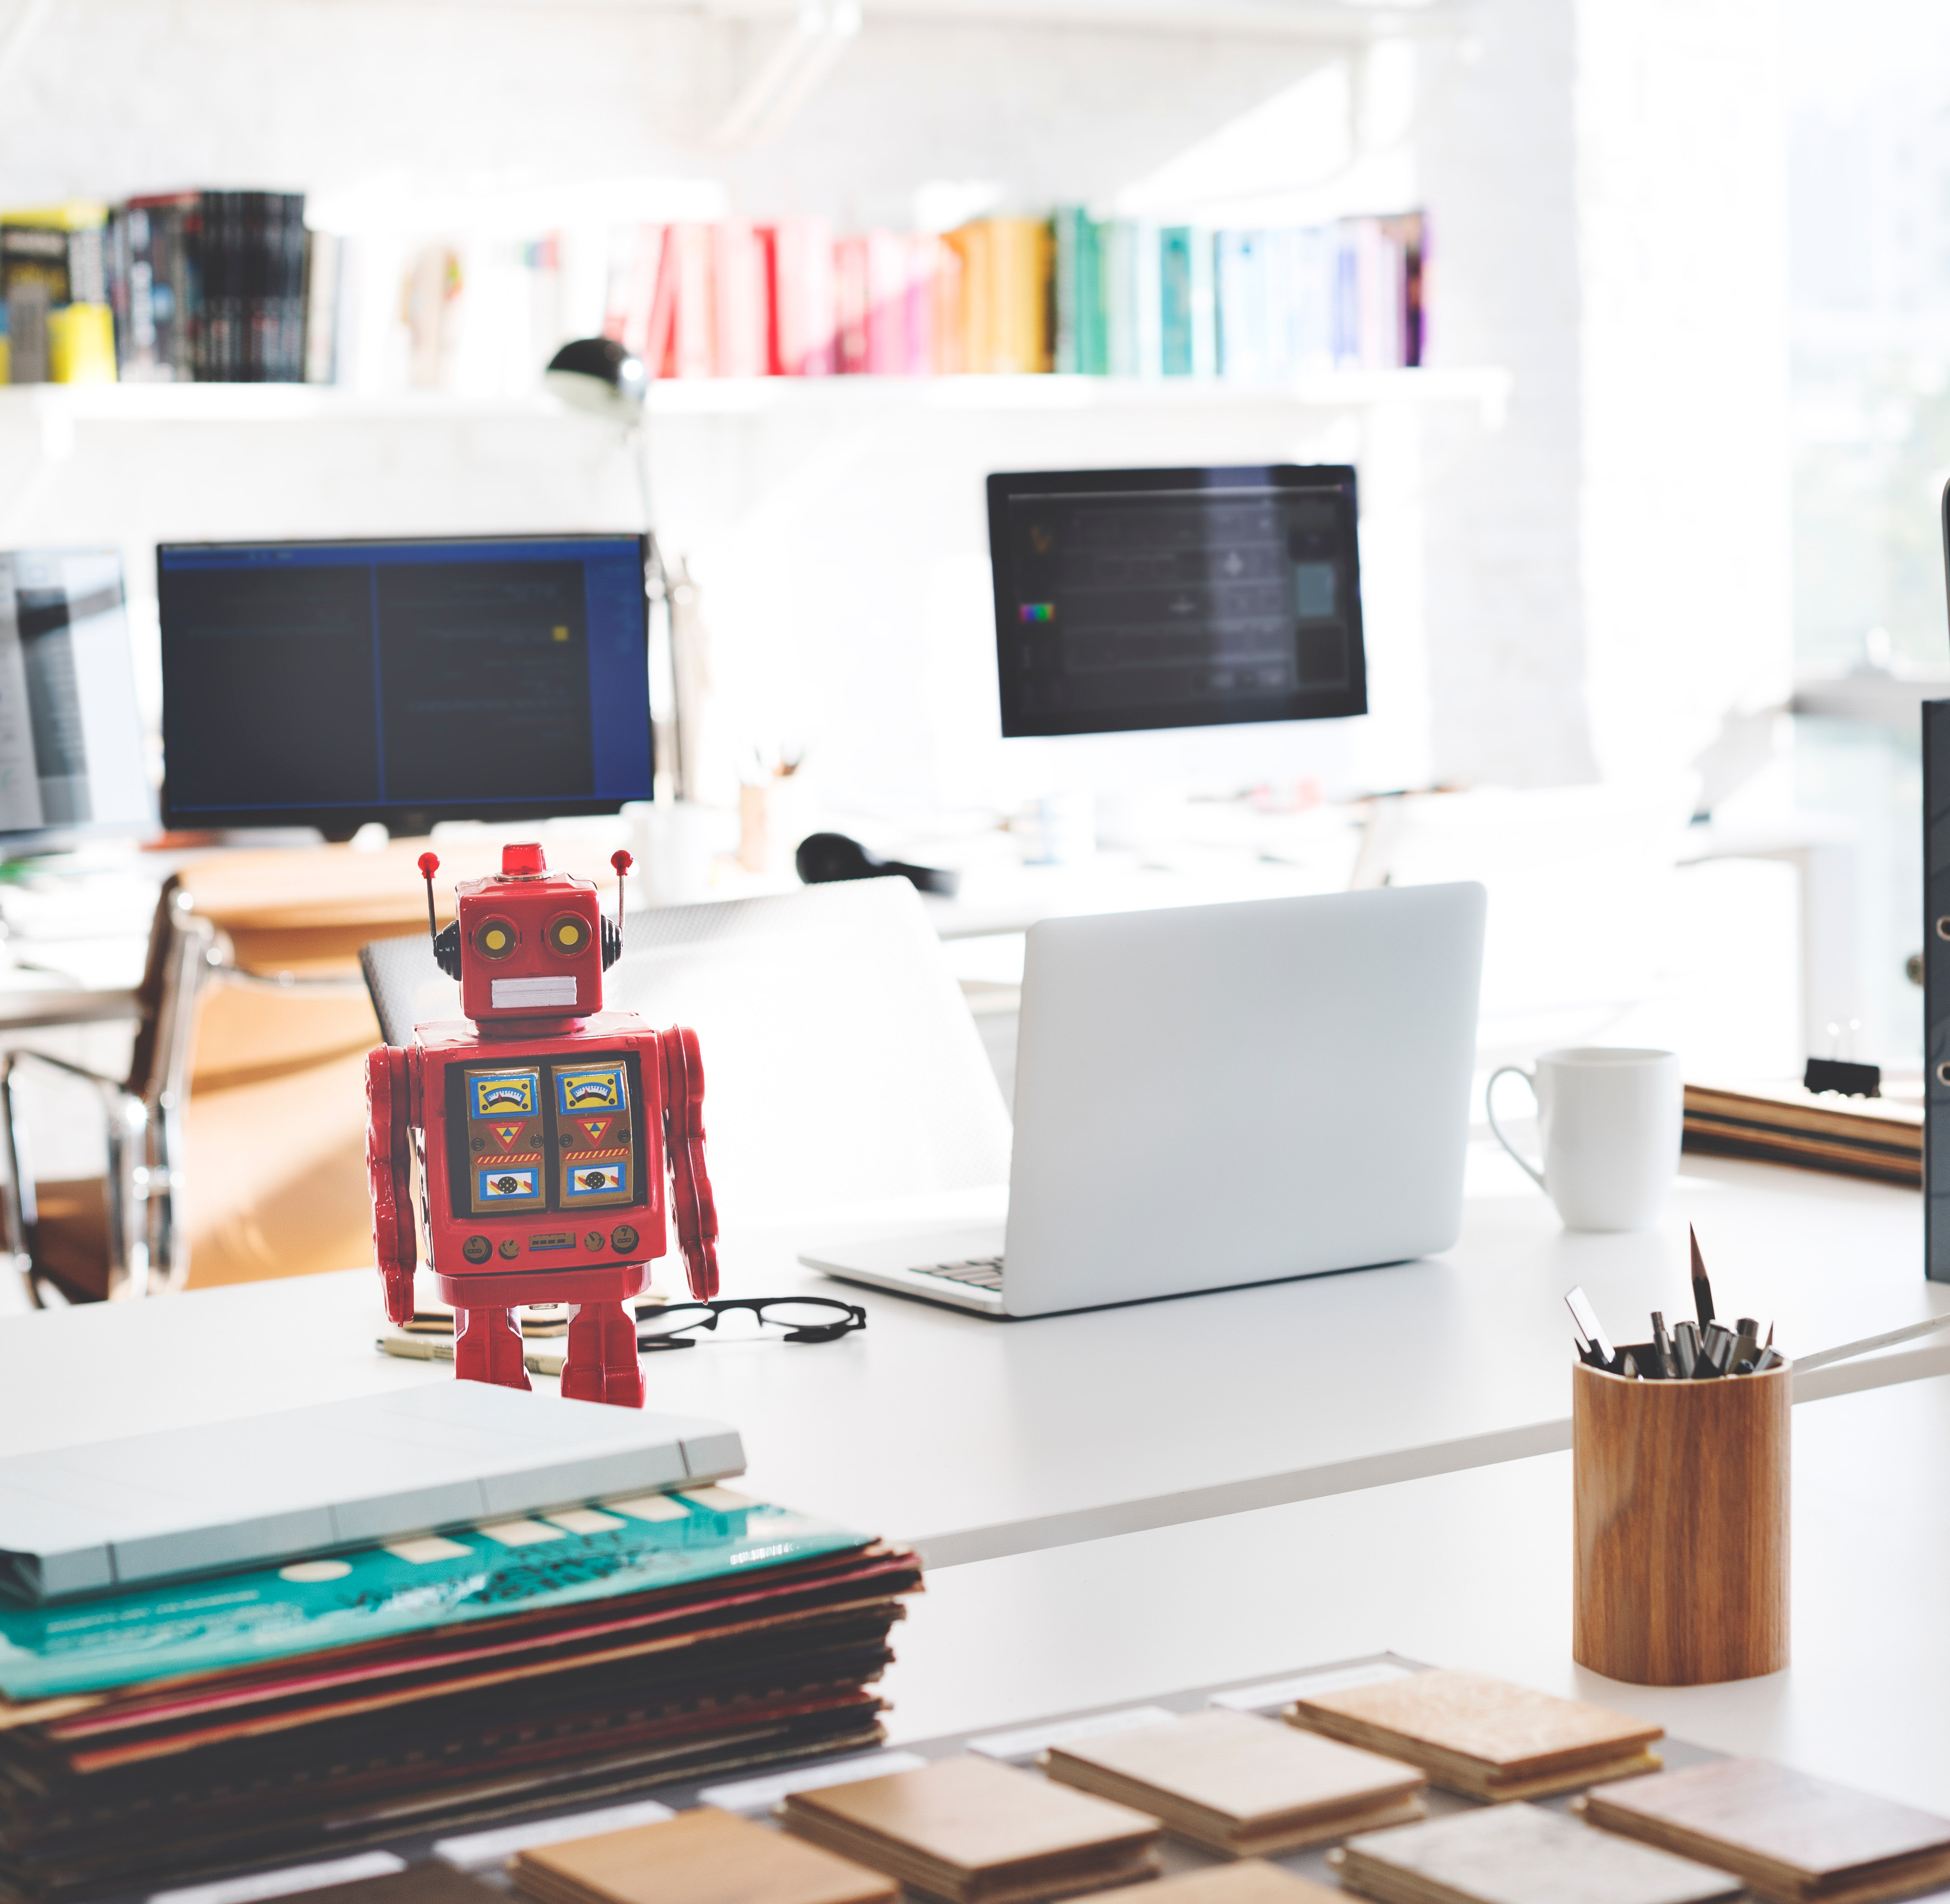 Using Chatbot Technology to Automate your Firm